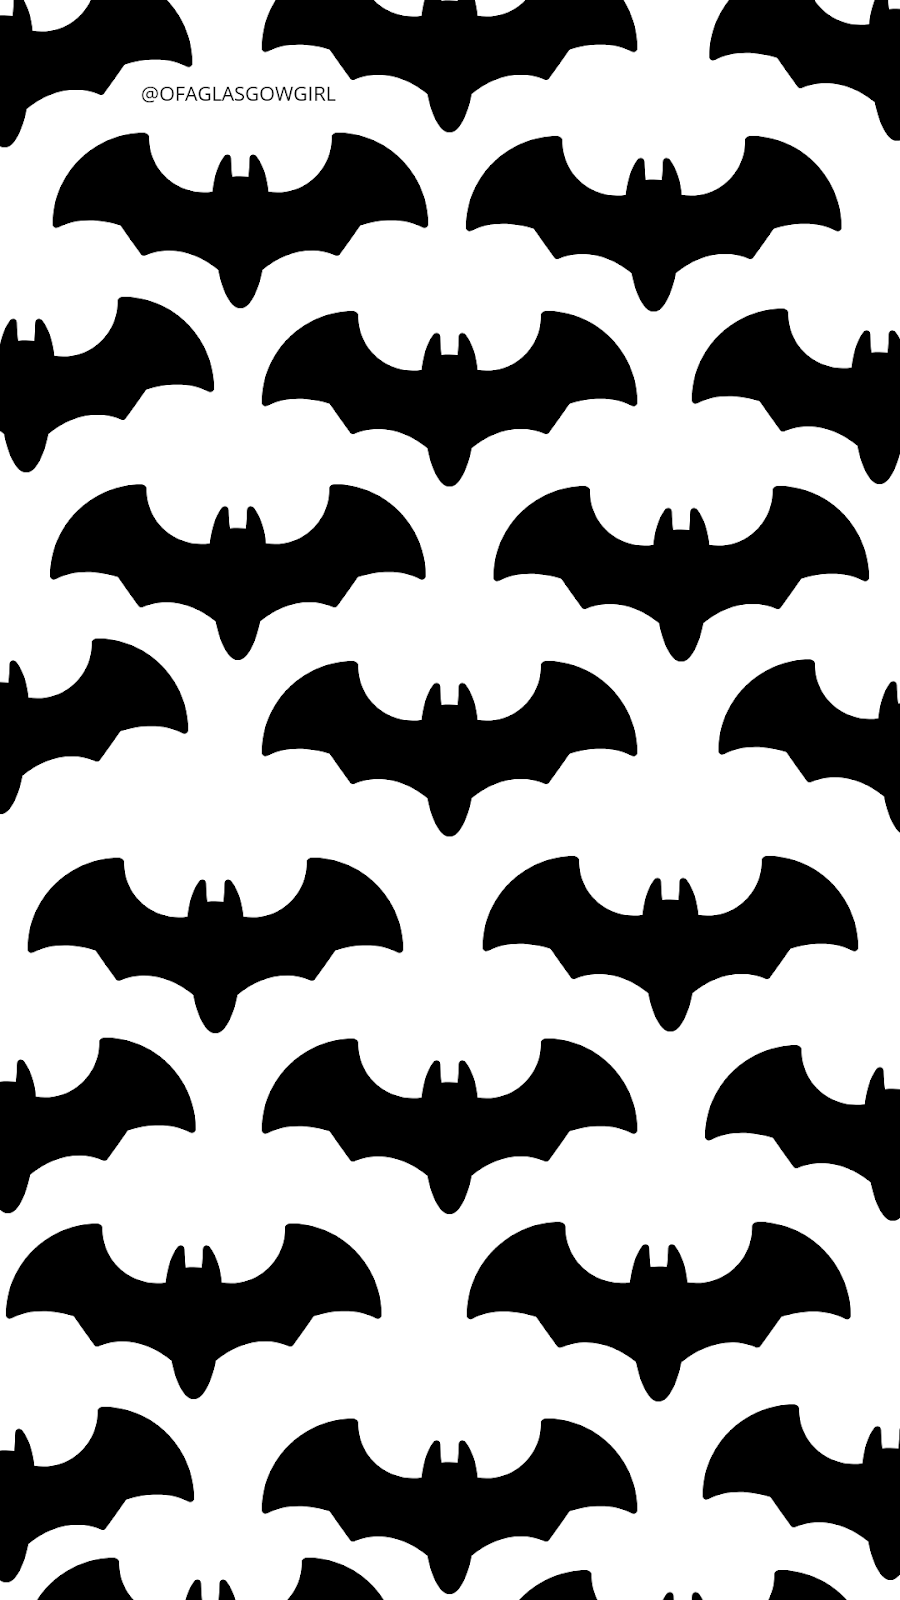 Halloween phone wallpaper or instagram template with a repeated pattern of black bats on it.